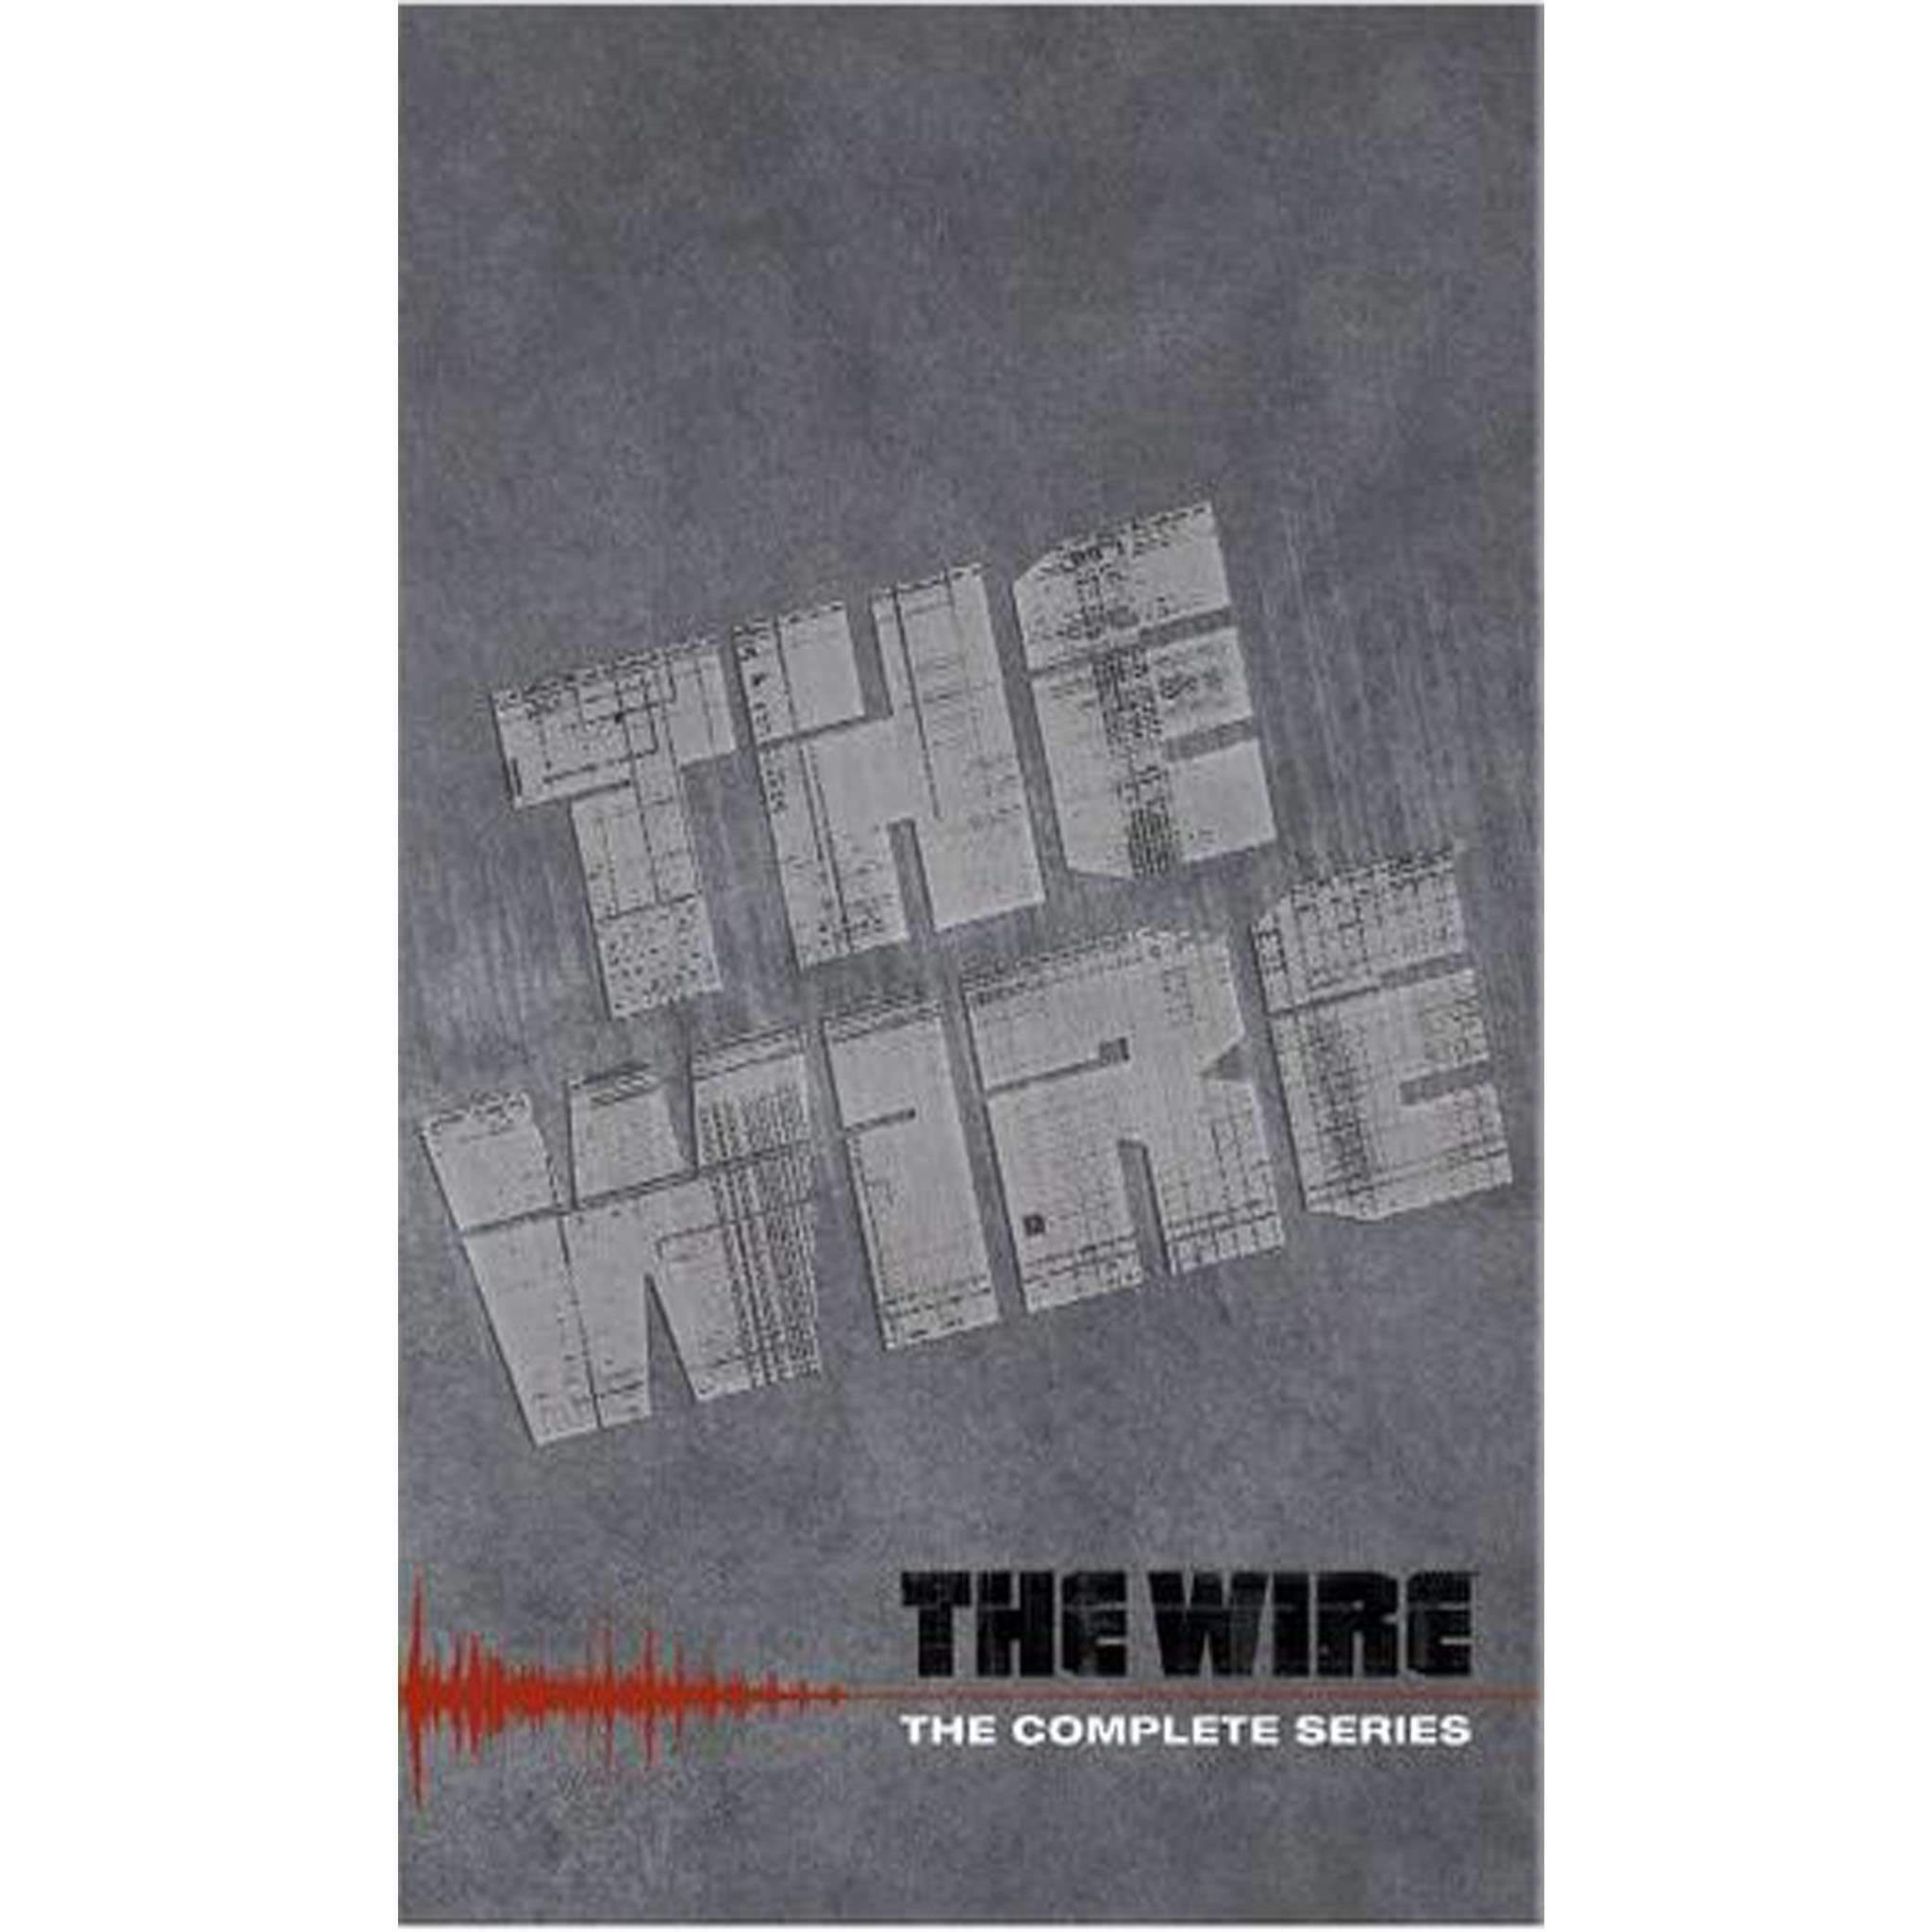 The Wire: The Complete Series (DVD) HBO DVDs & Blu-ray Discs > DVDs > Box Sets